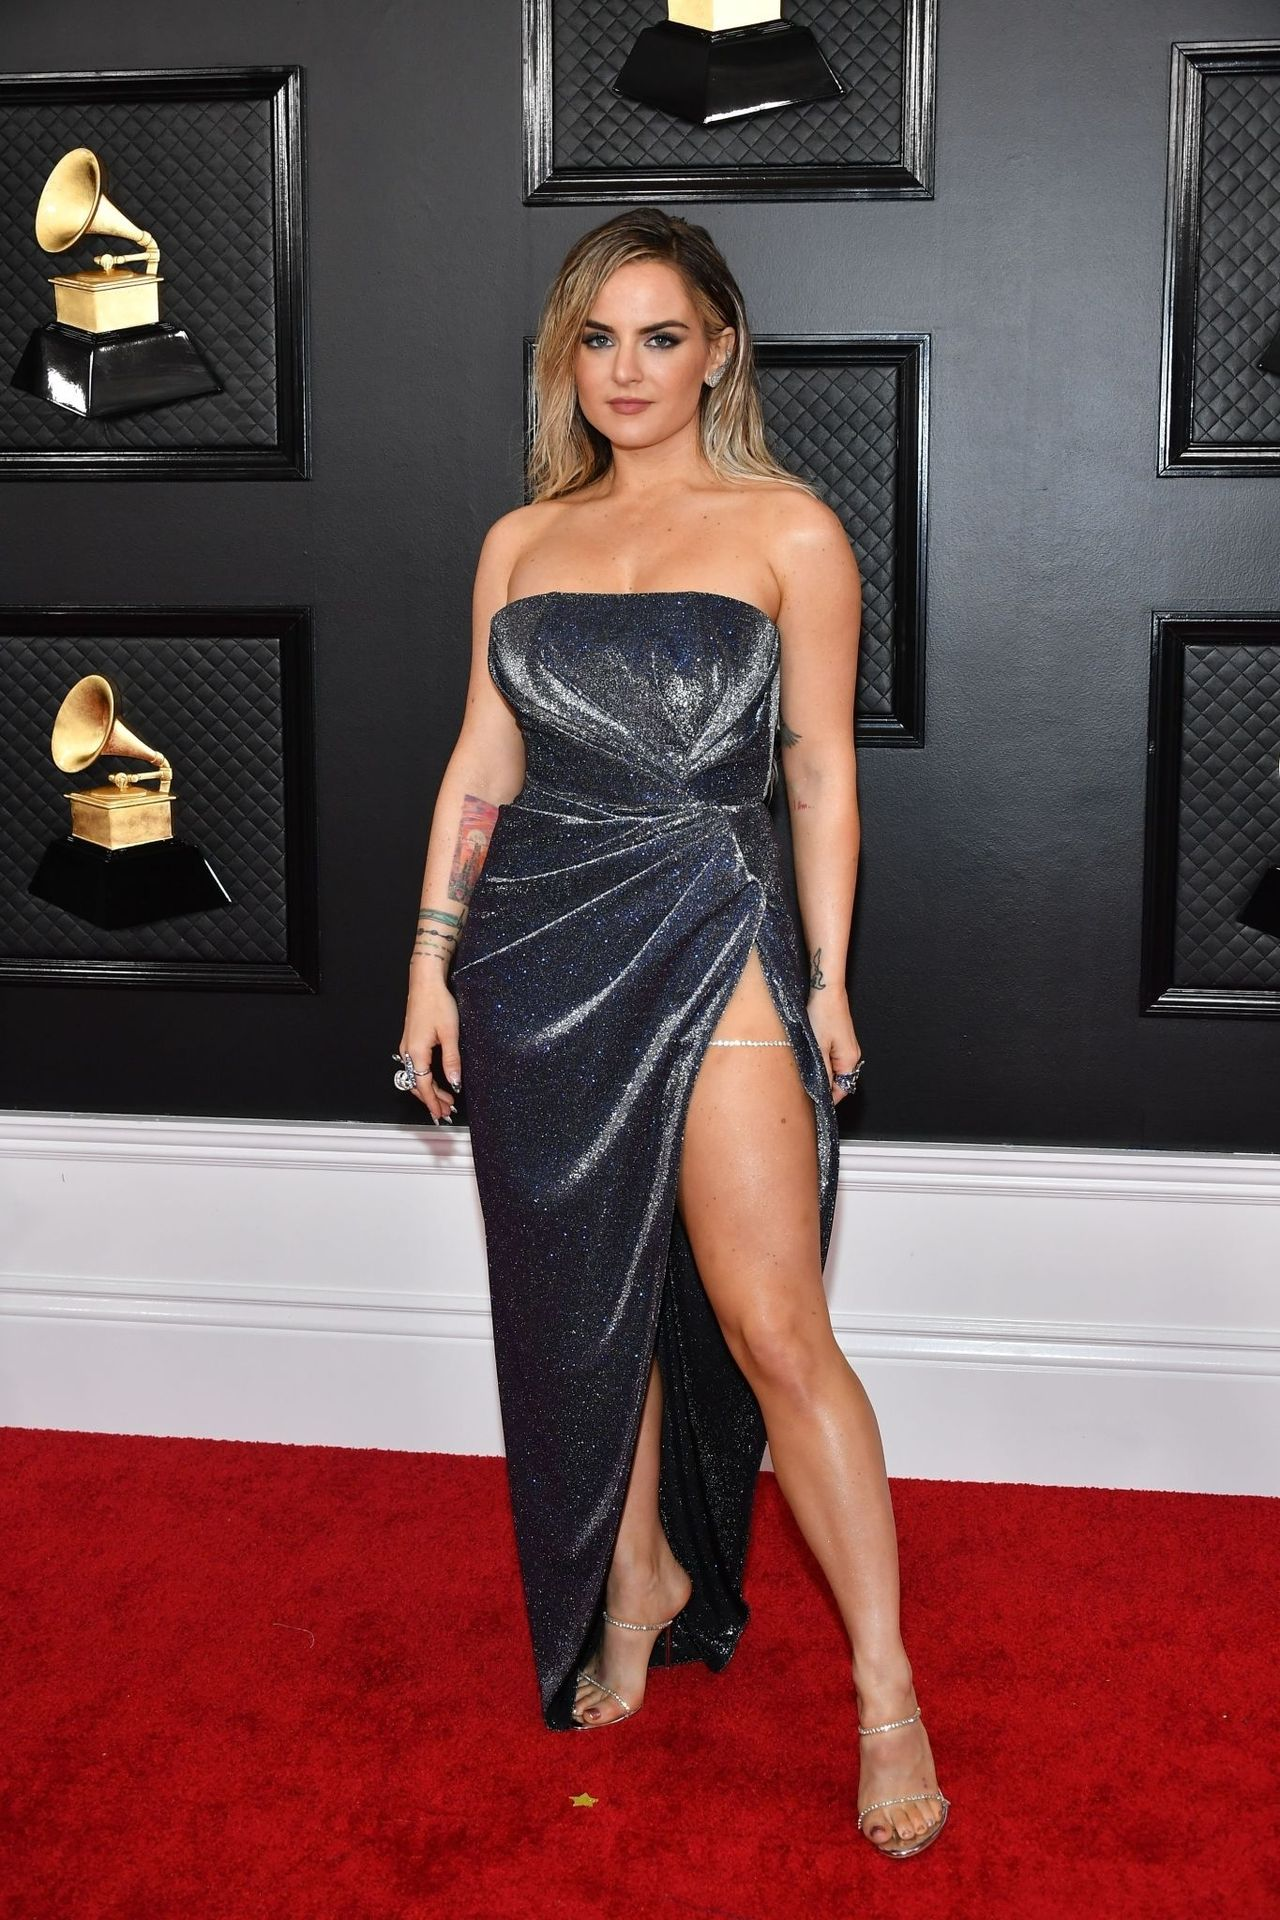 Jojo Shows Her Legs And Cleavage At The 62nd Annual Grammy Awards 0011